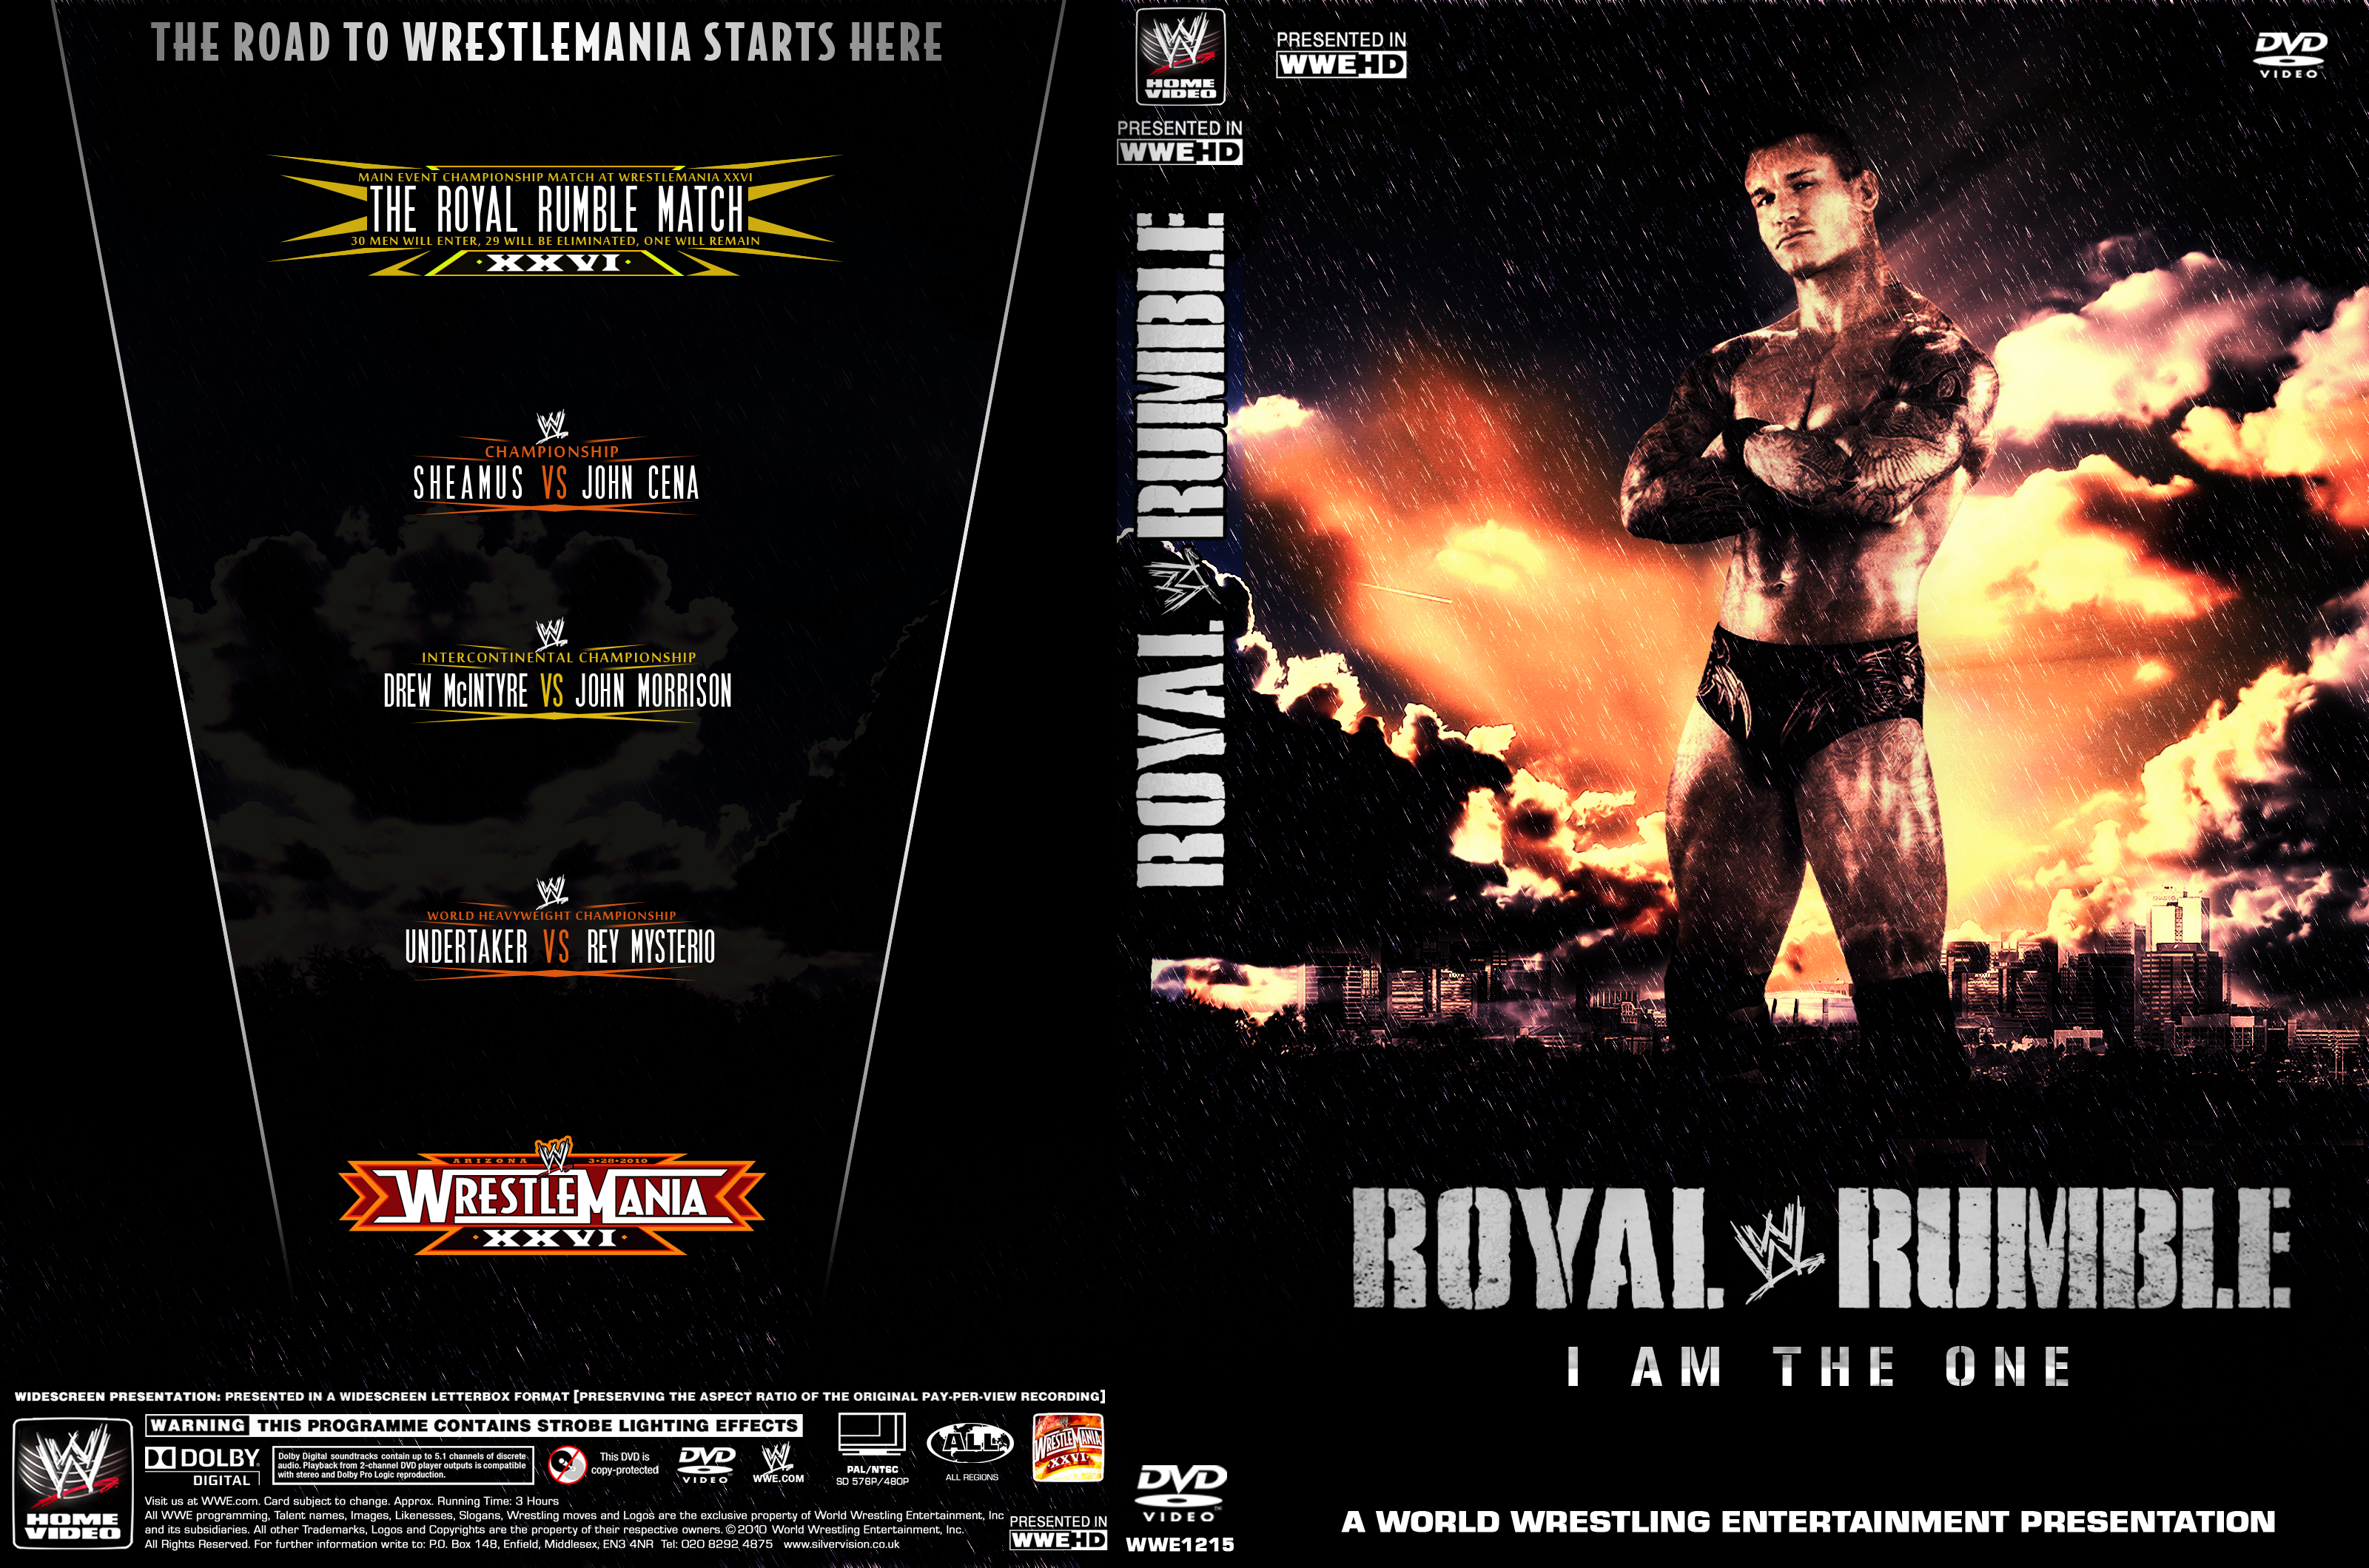 Royal Rumble   Matches, Results, Videos, Photos, and More